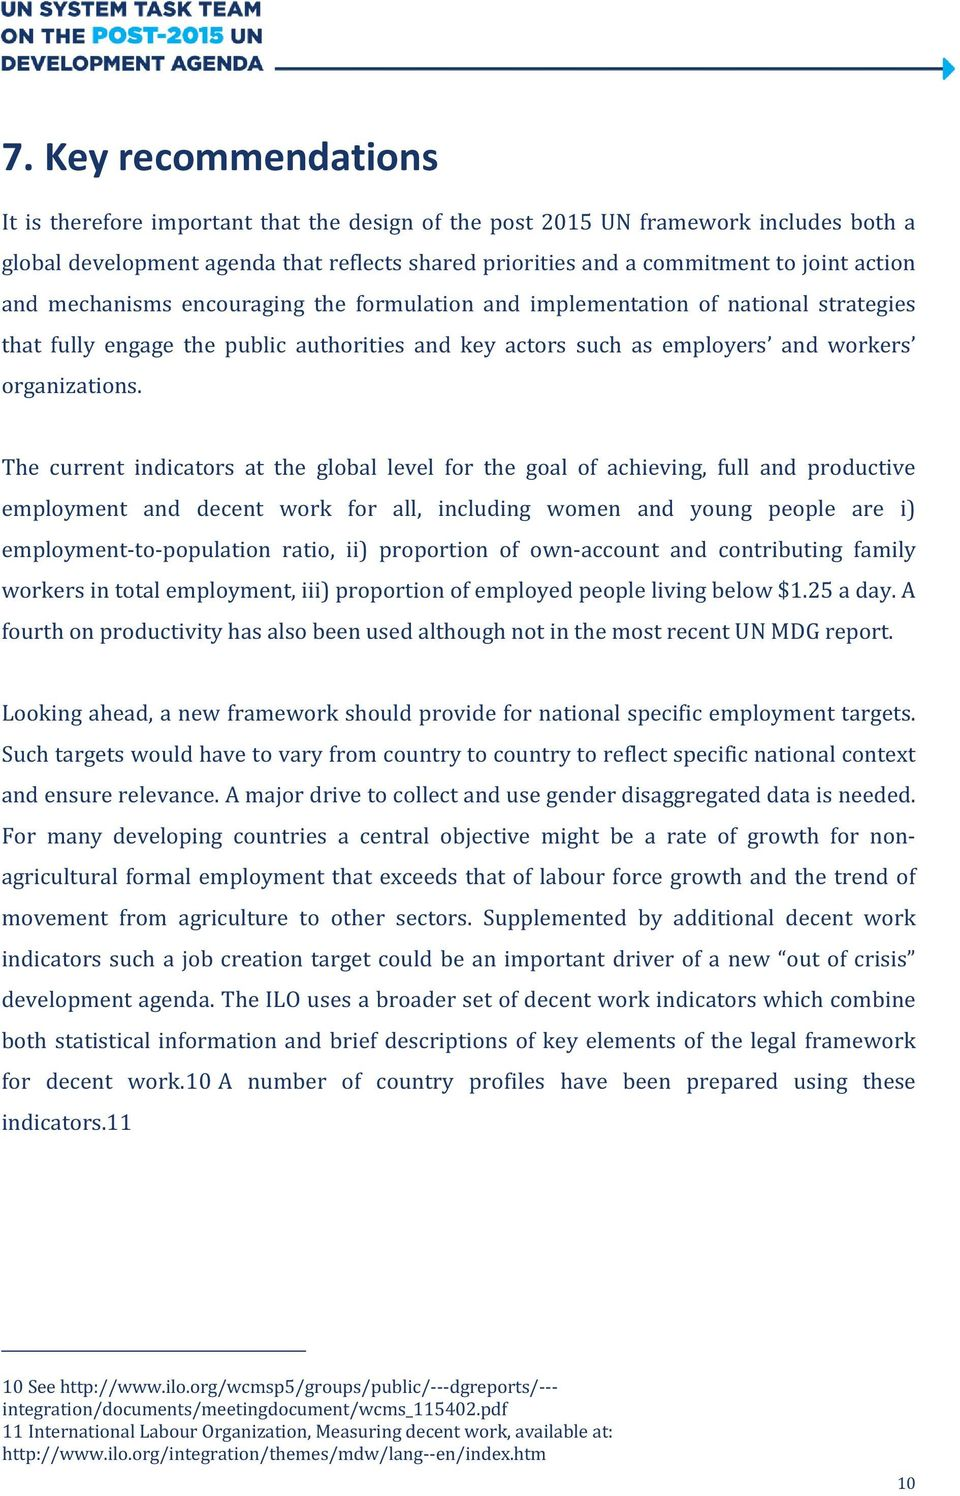 The current indicators at the global level for the goal of achieving, full and productive employment and decent work for all, including women and young people are i) employment-to-population ratio,